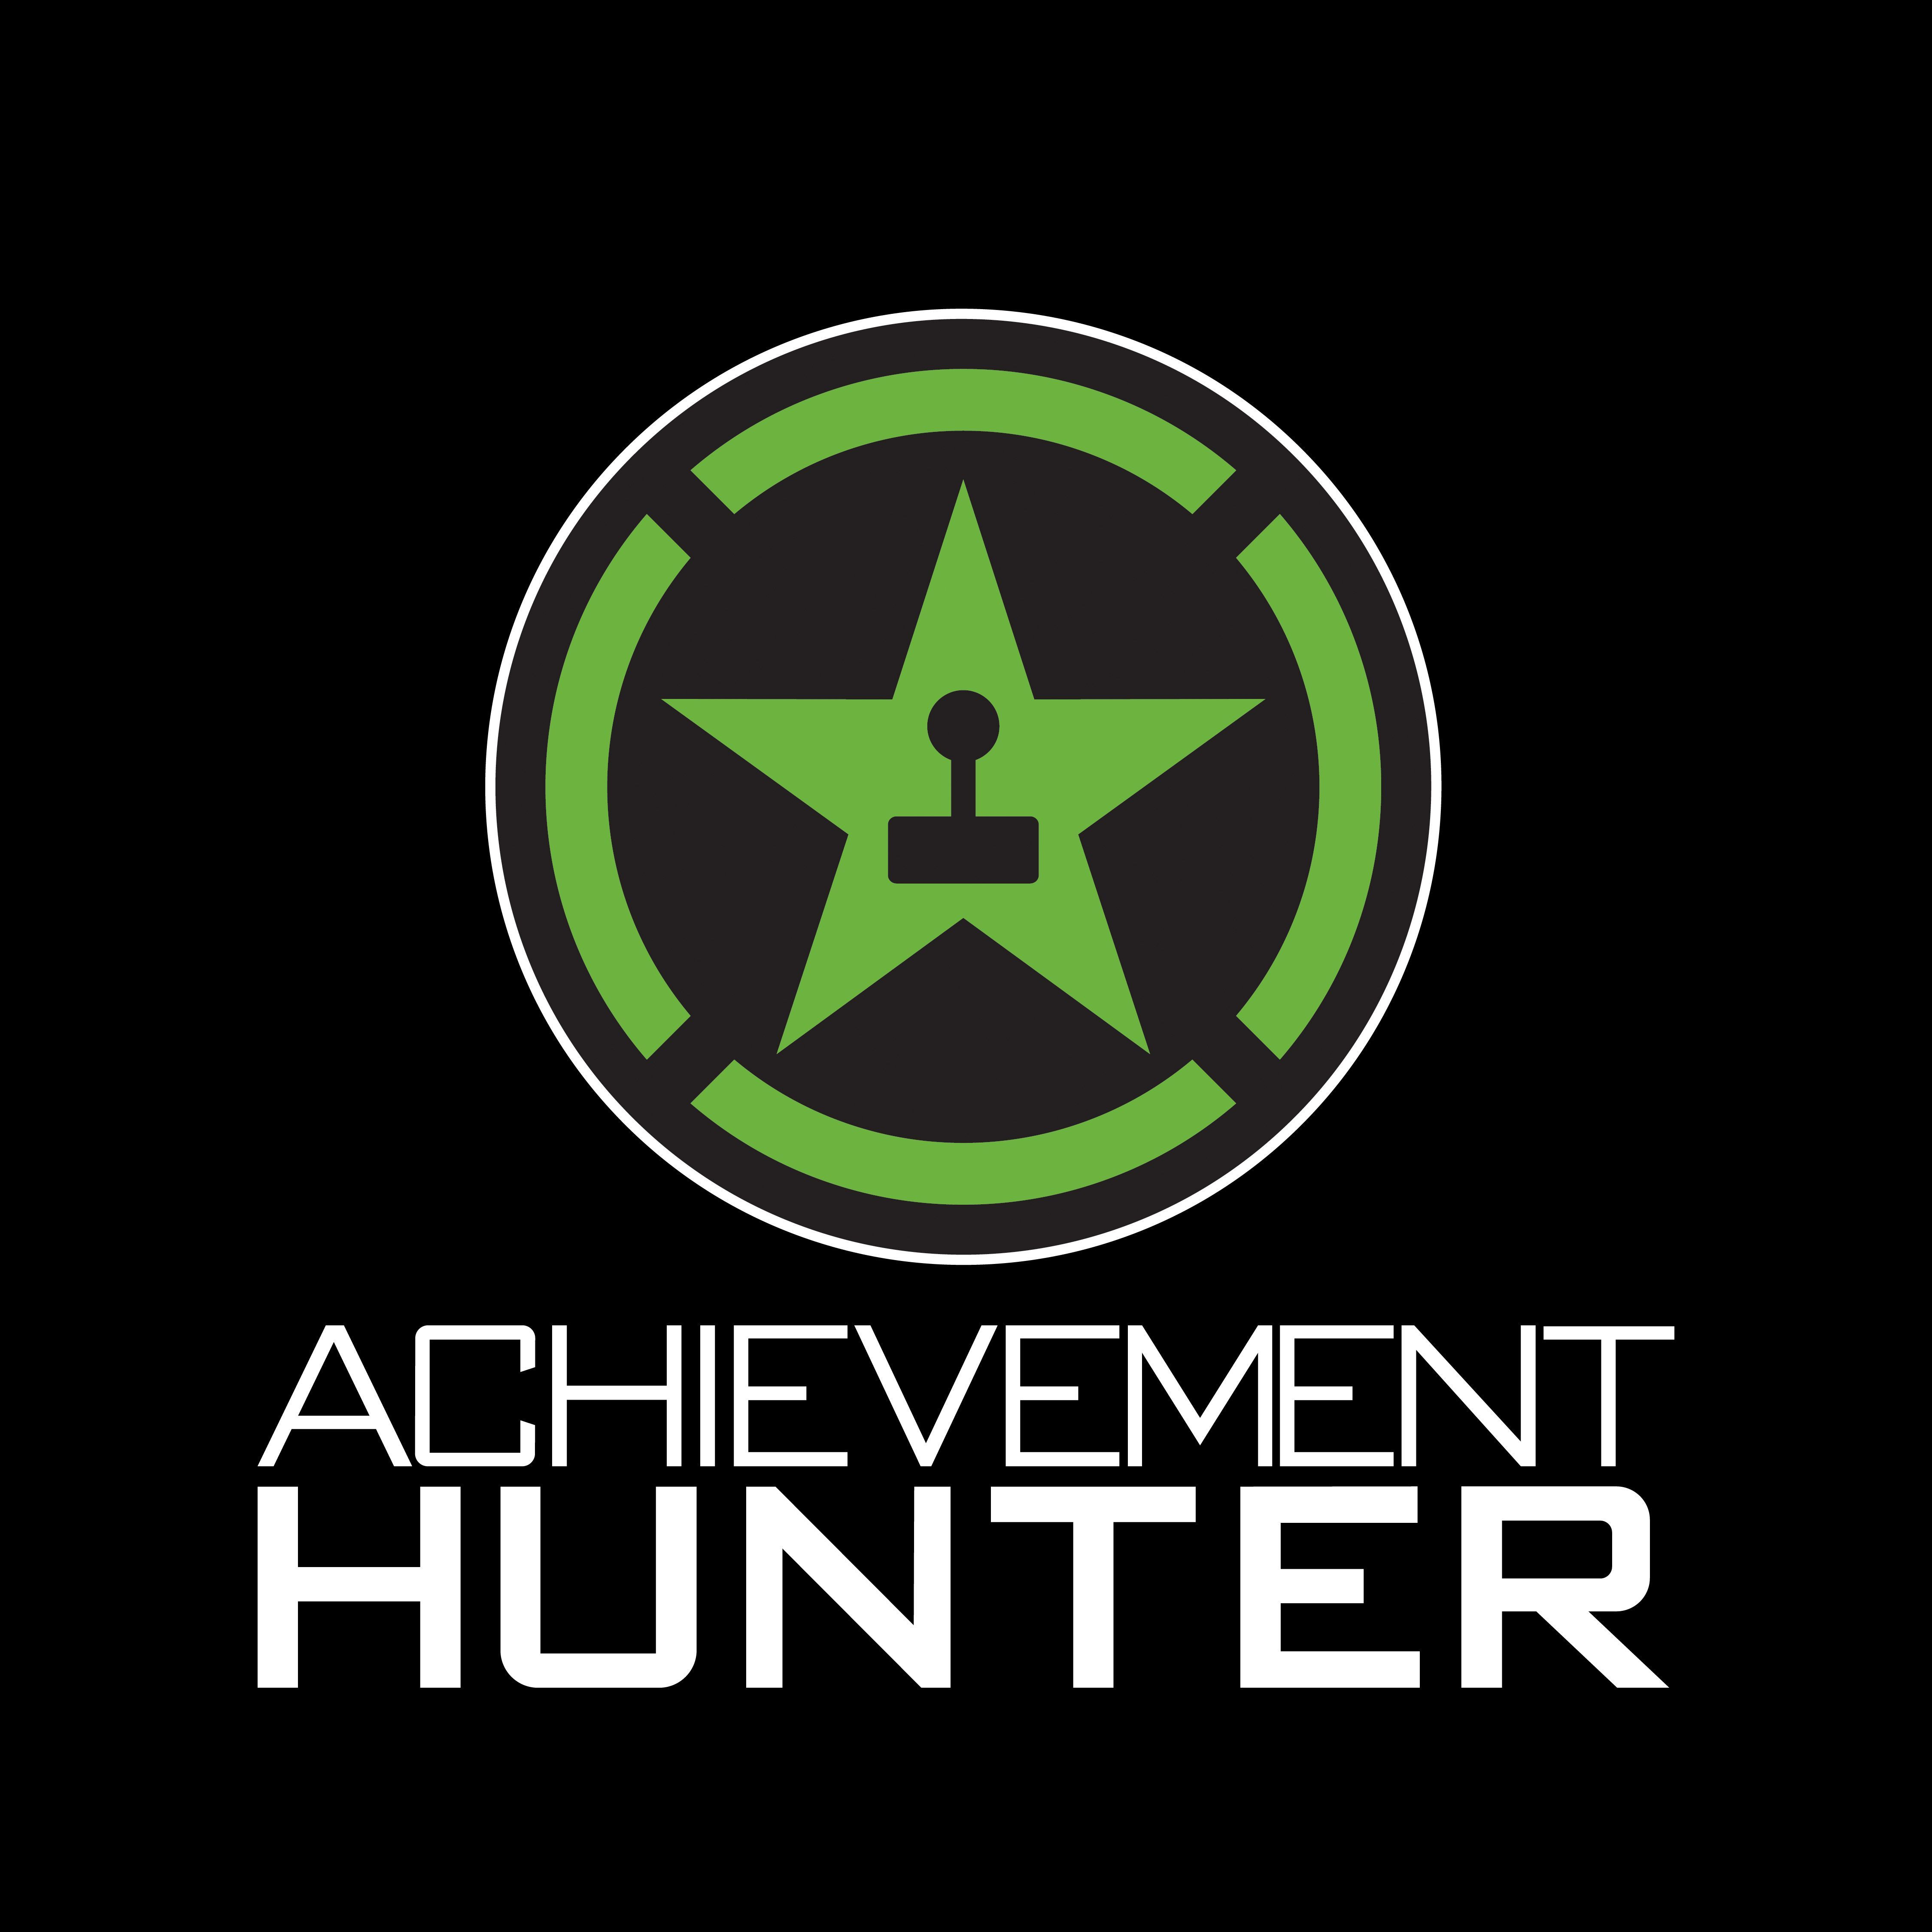 This is the logo for Achievement Hunter, a group of very